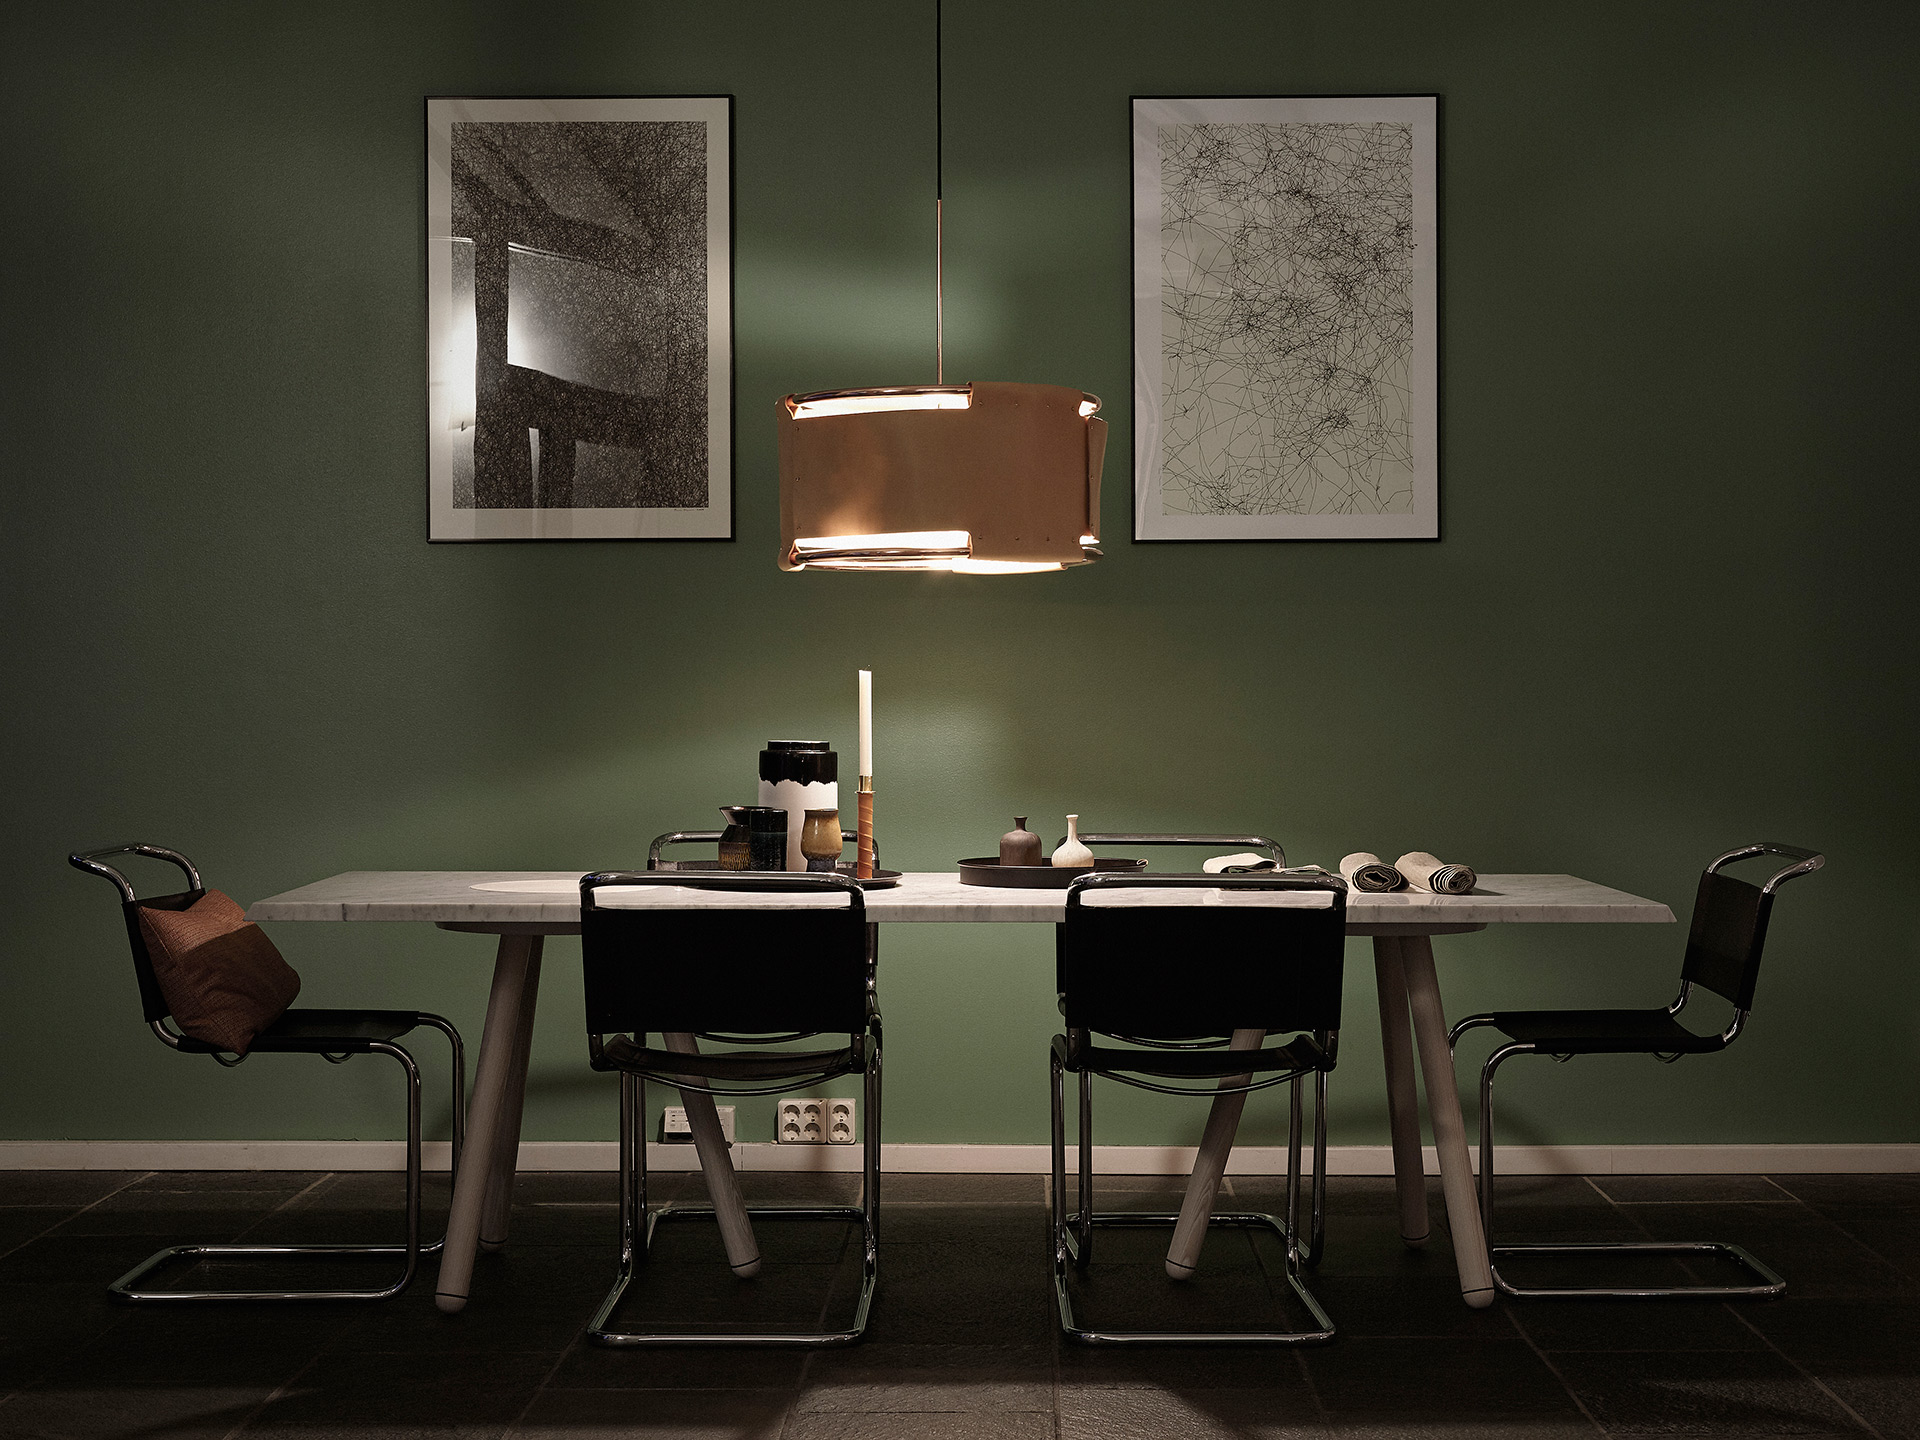 Matbord & lampa: Ready-Made, Konst: Erik Rosman by Arrivals